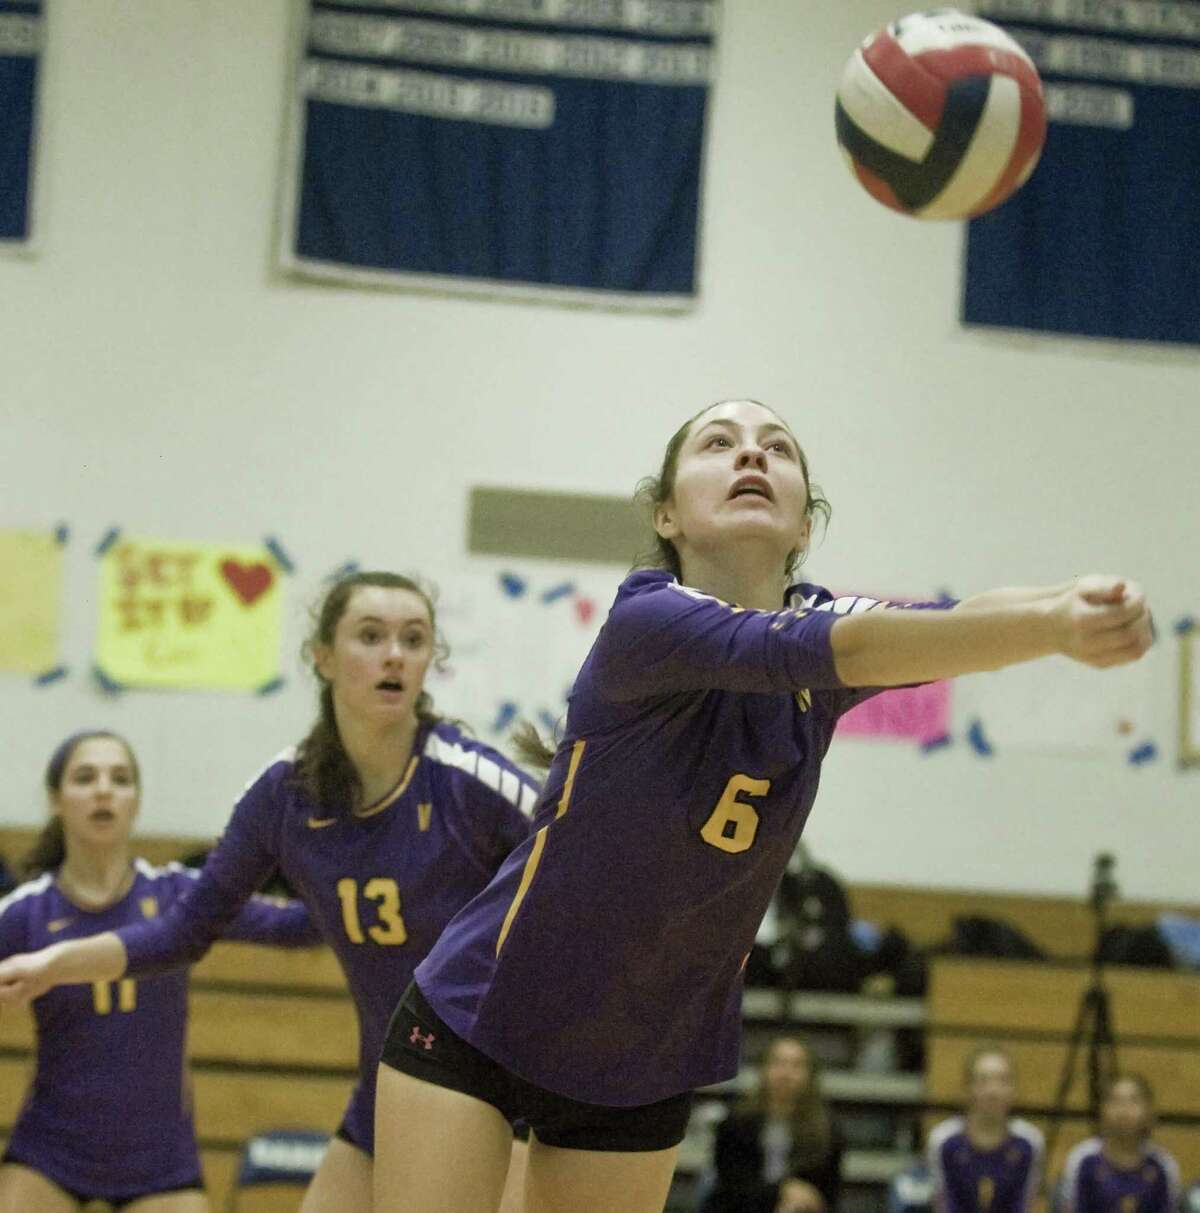 Westhill High School's Caroline Boyd returns the ball in a game against Darien High School, played at Darien. Monday, Oct. 22, 2018